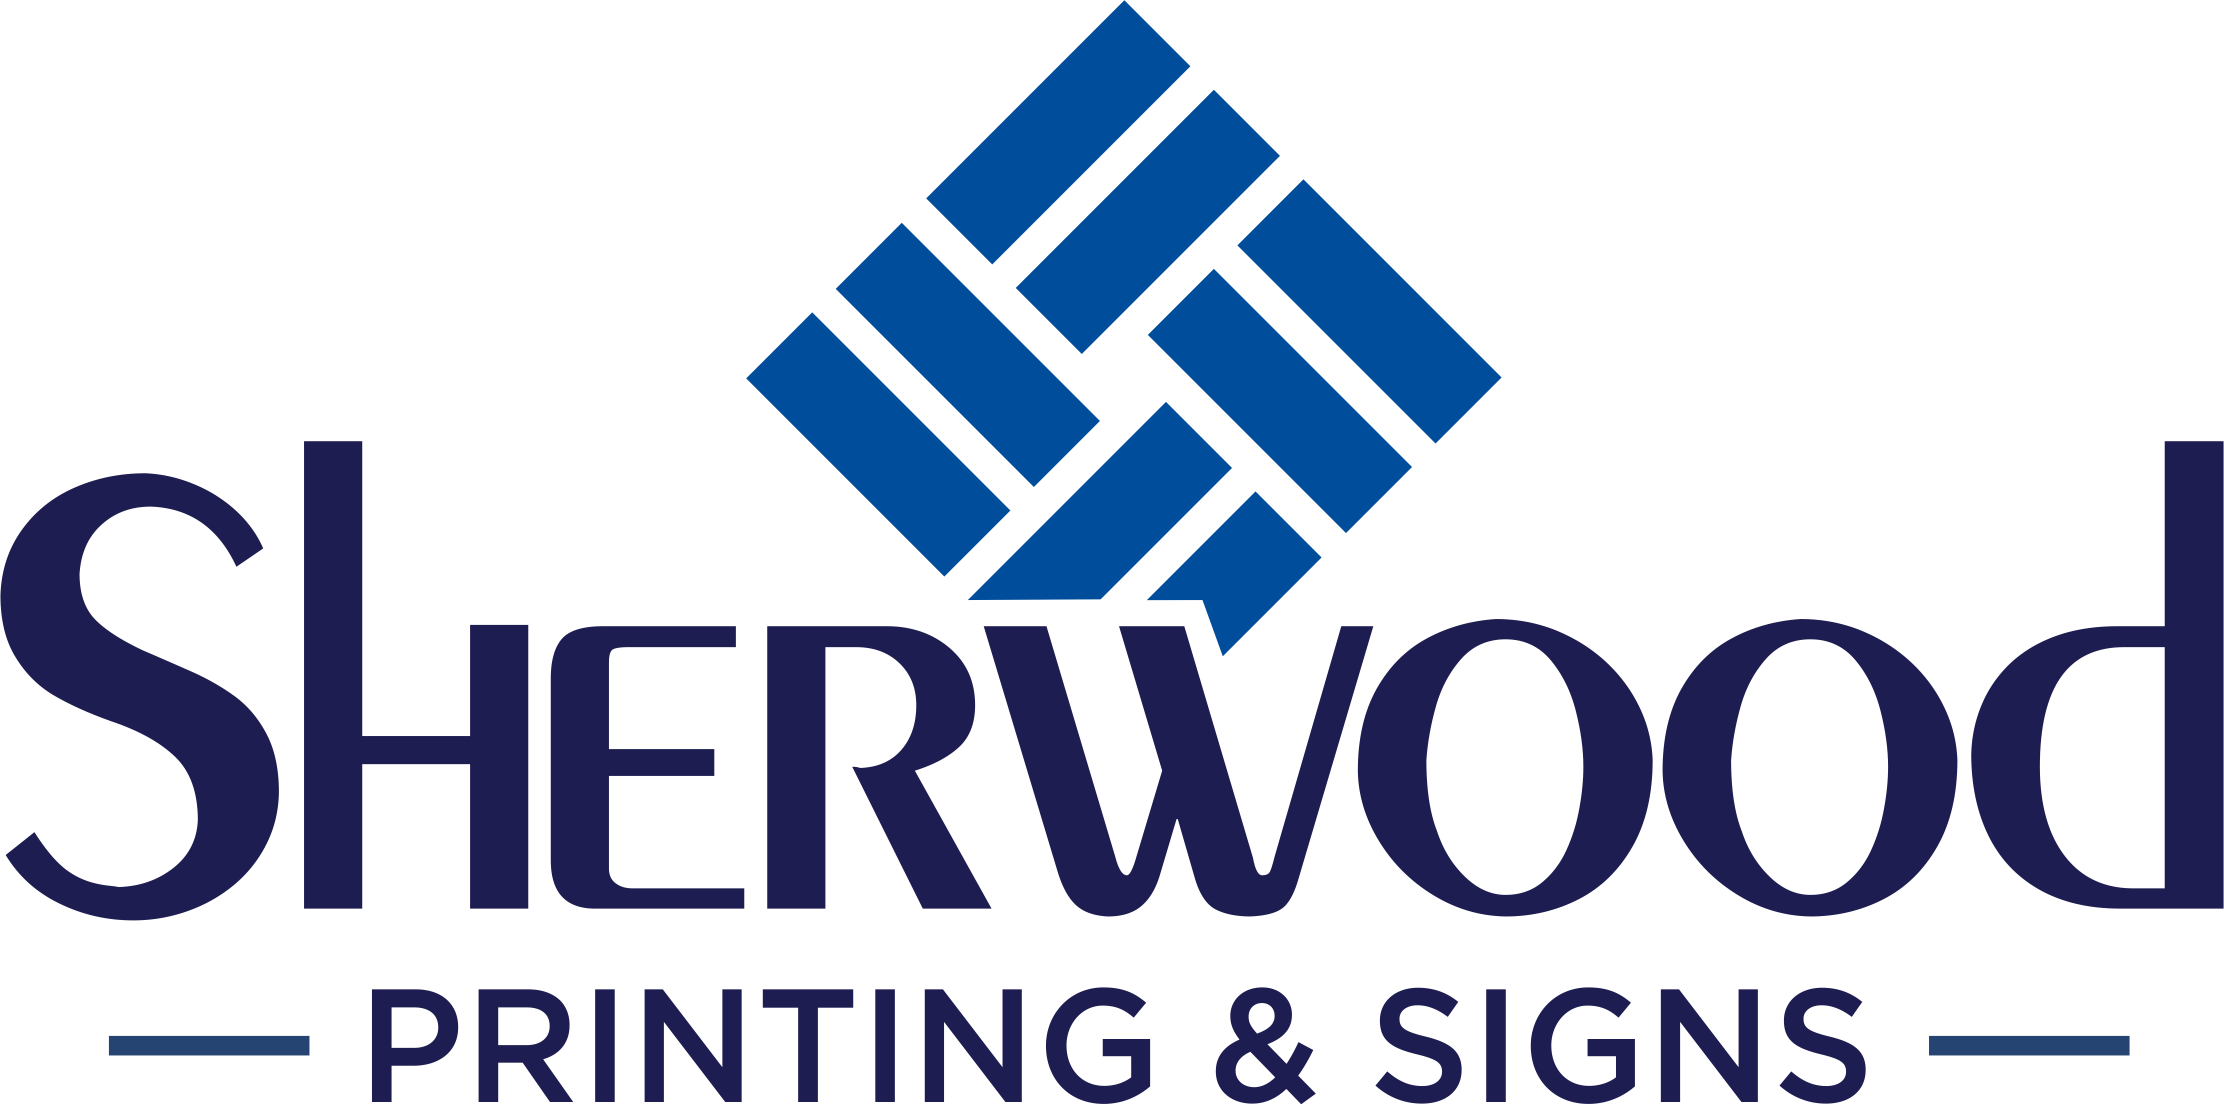 SHERWOOD PRINTING & SIGNS